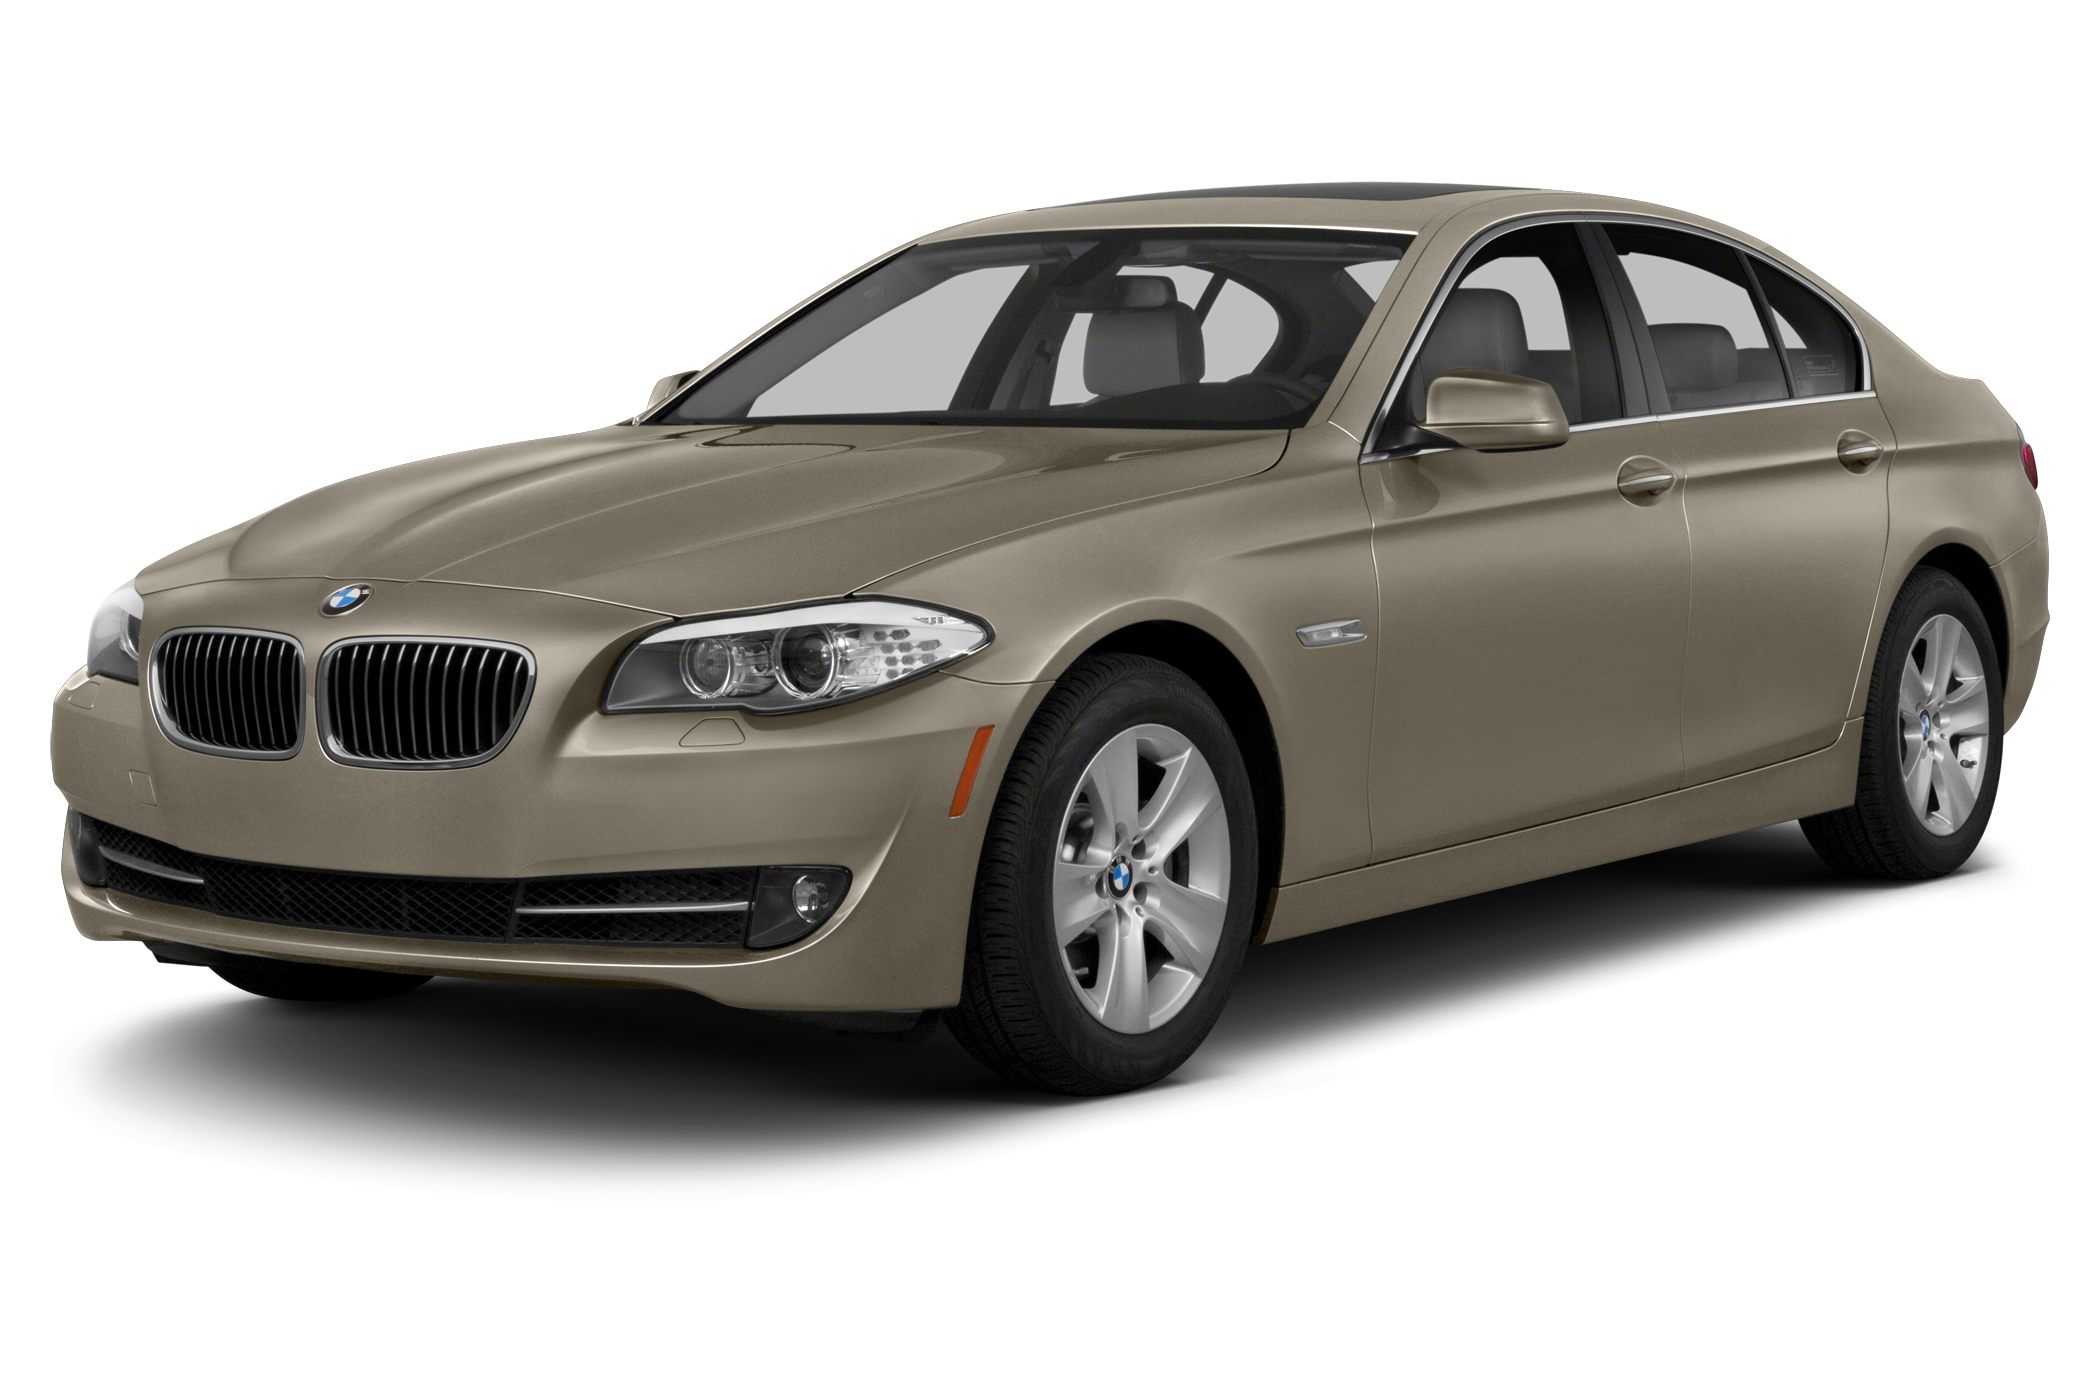 2013 BMW 550 I XDrive Sedan for sale in Brooklyn for $49,995 with 18,726 miles.